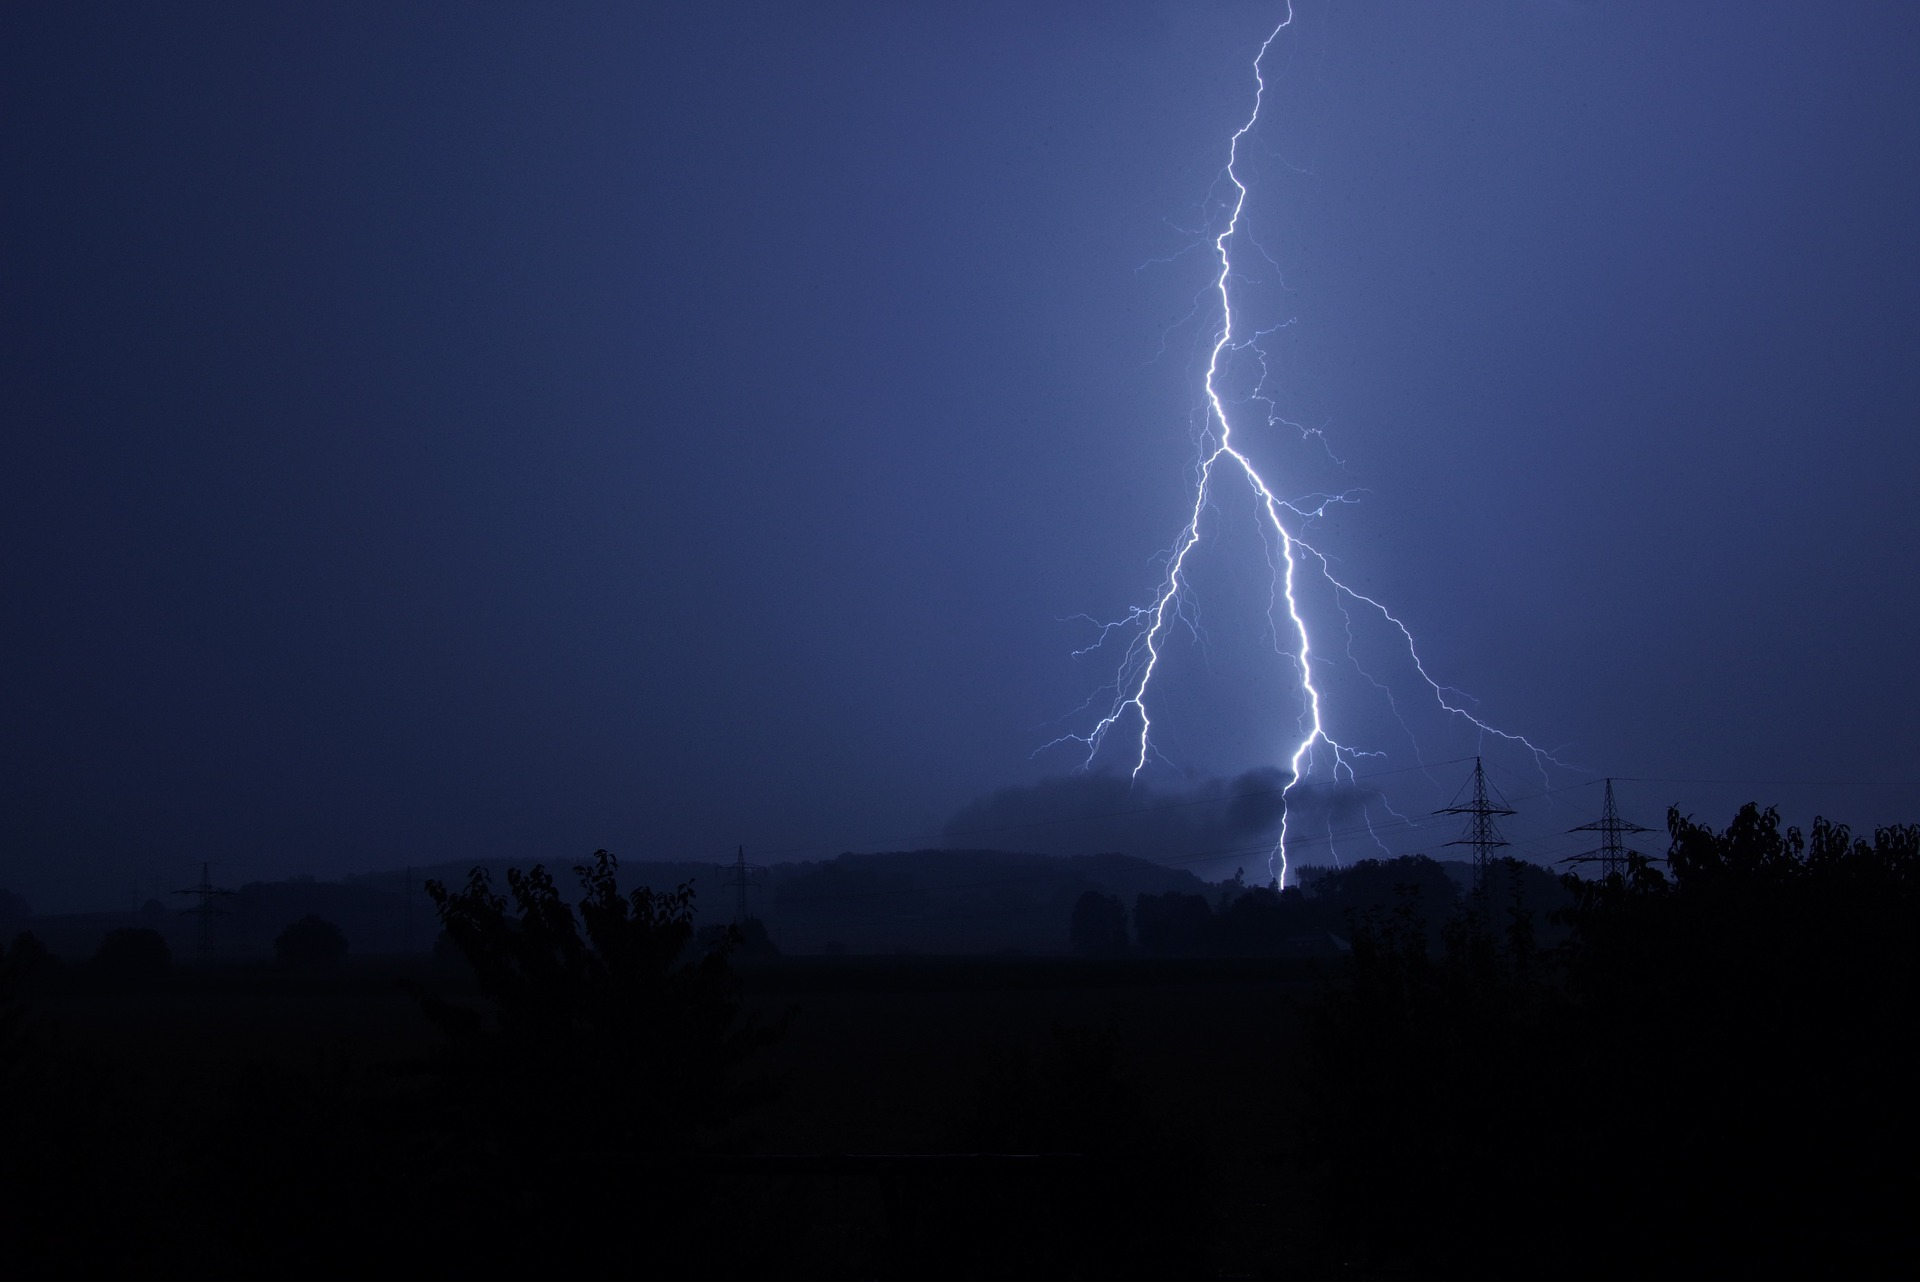 How Lightning Strikes Can Improve Storm Forecasts